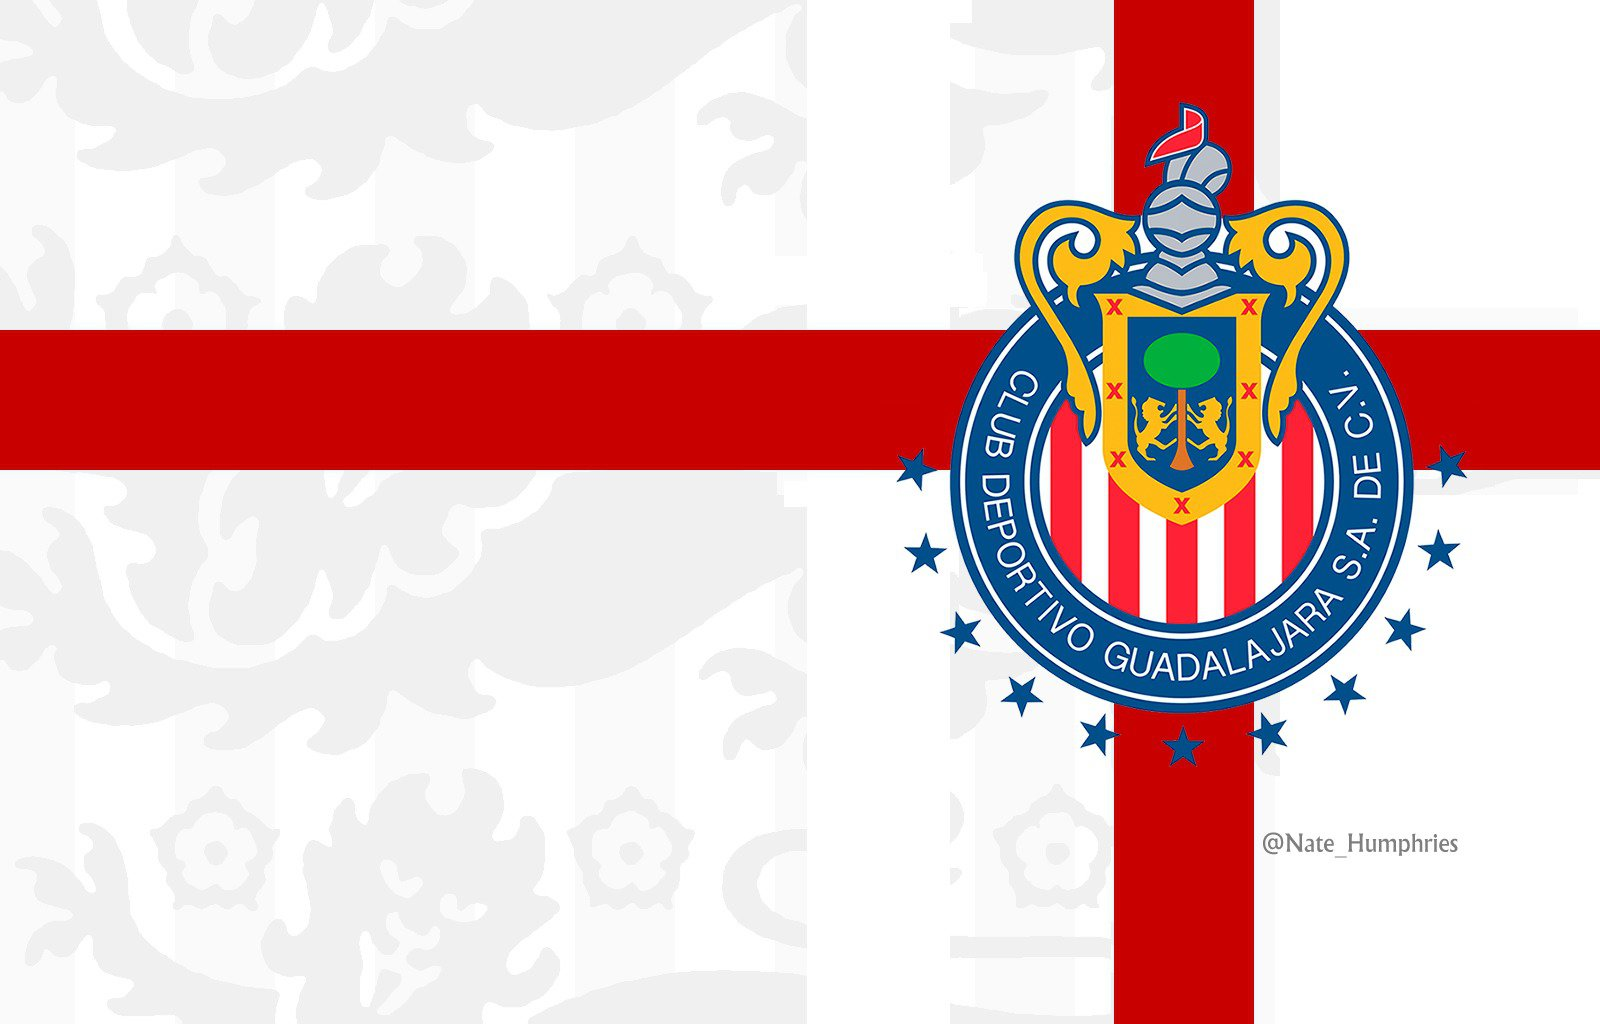 1600x1024 - C.D. Guadalajara Wallpapers 27